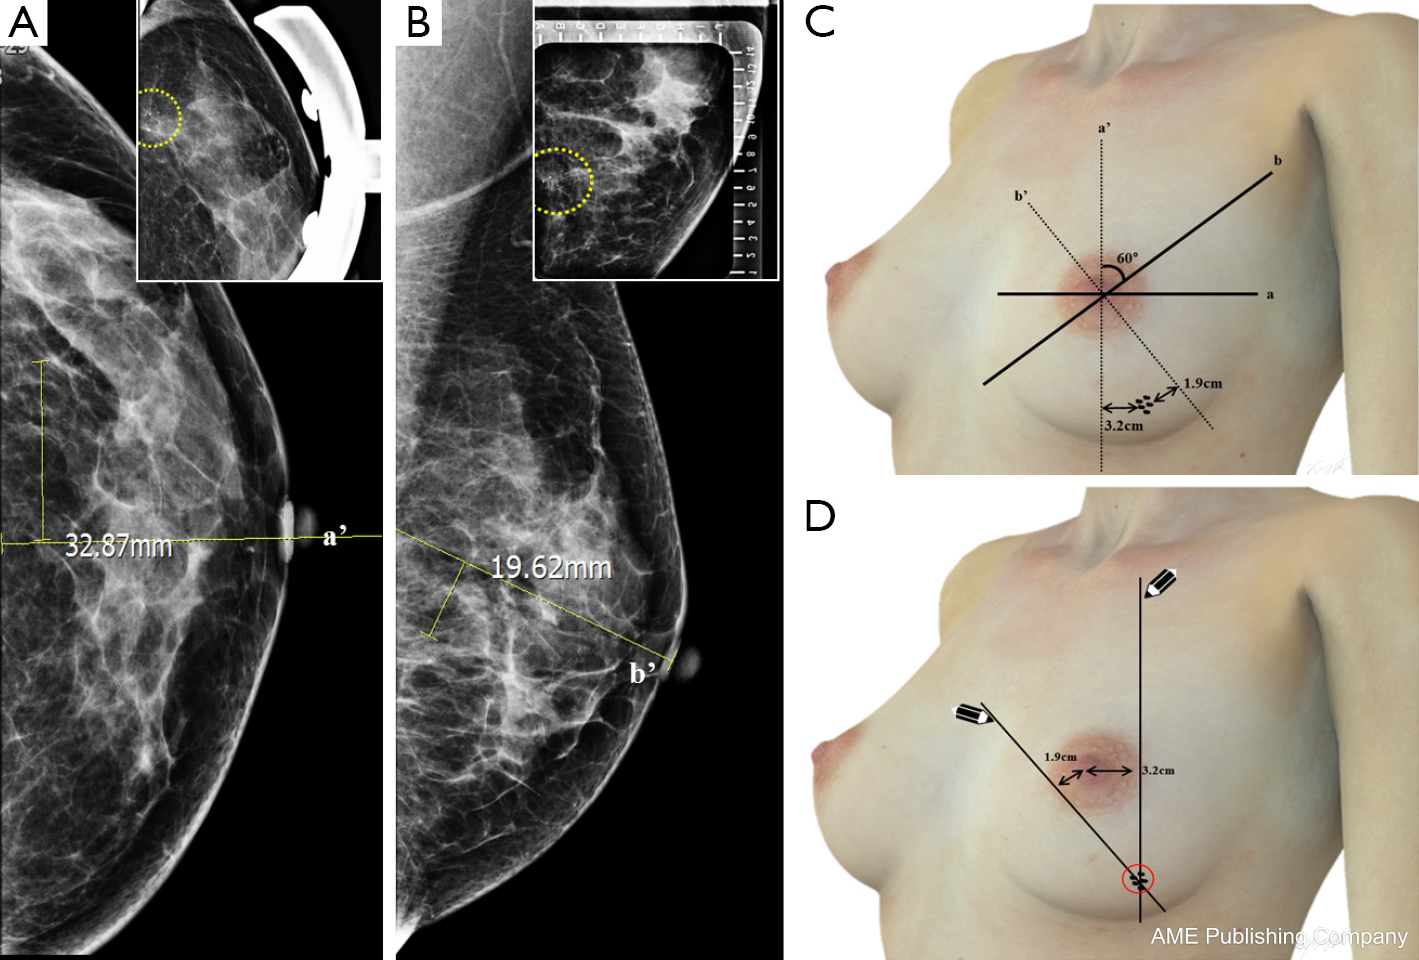 Figure 1 Non-stereotactic method for identification of the location of  breast microcalcifications. (A) Clustered microcalcifications were detected  3.2 cm ...